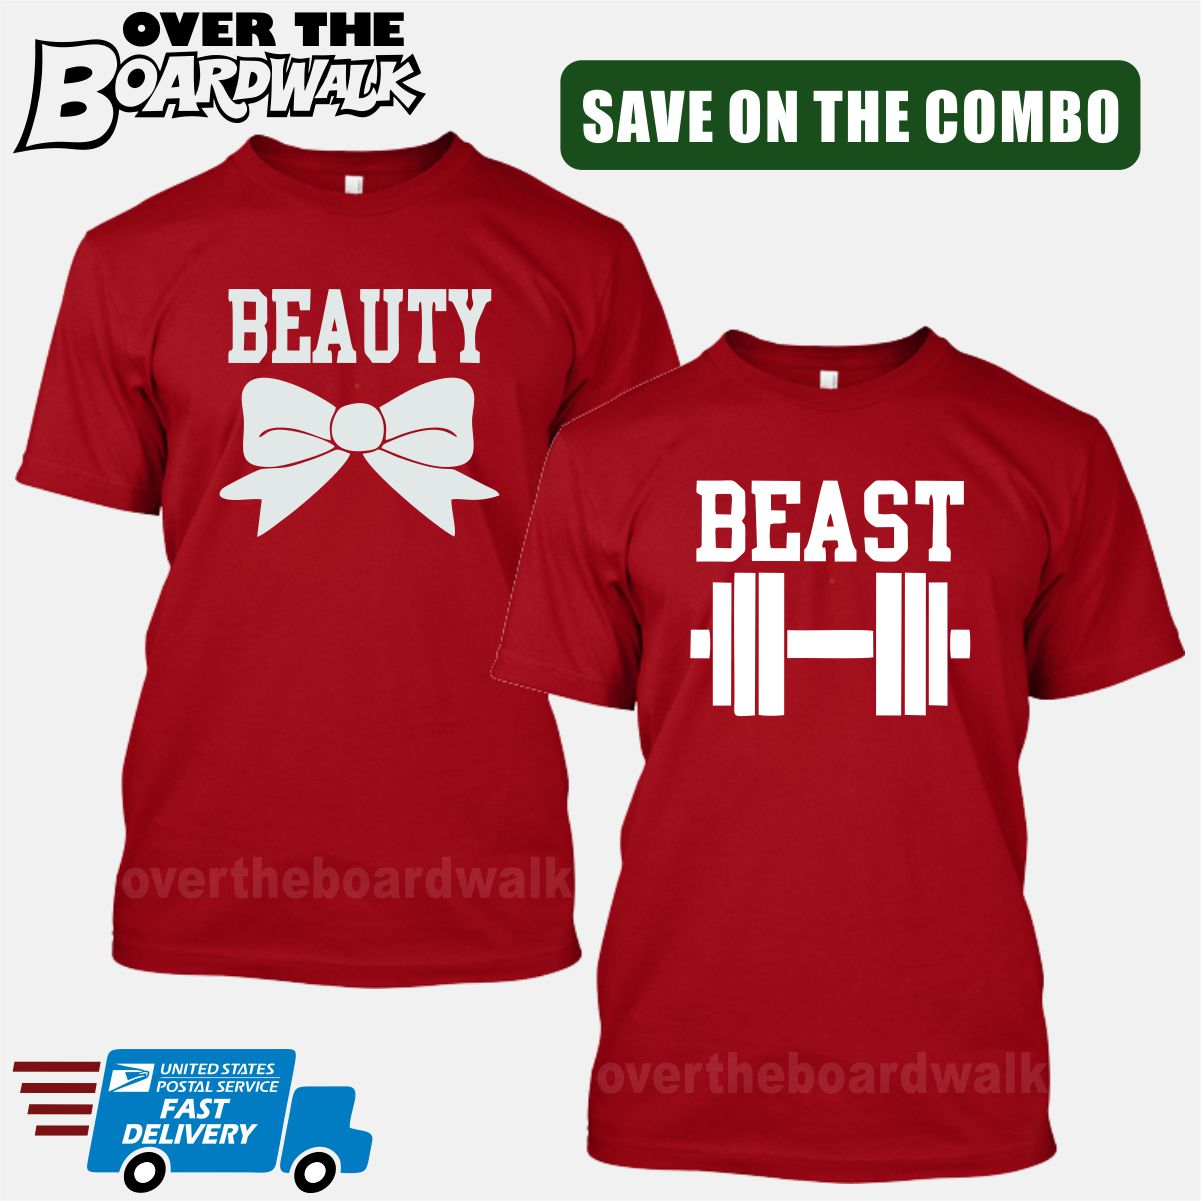 09c4f21b01 ... Beauty and Beast COMBO - Matching His and Her Couples Love Relationship  [T-shirts ...